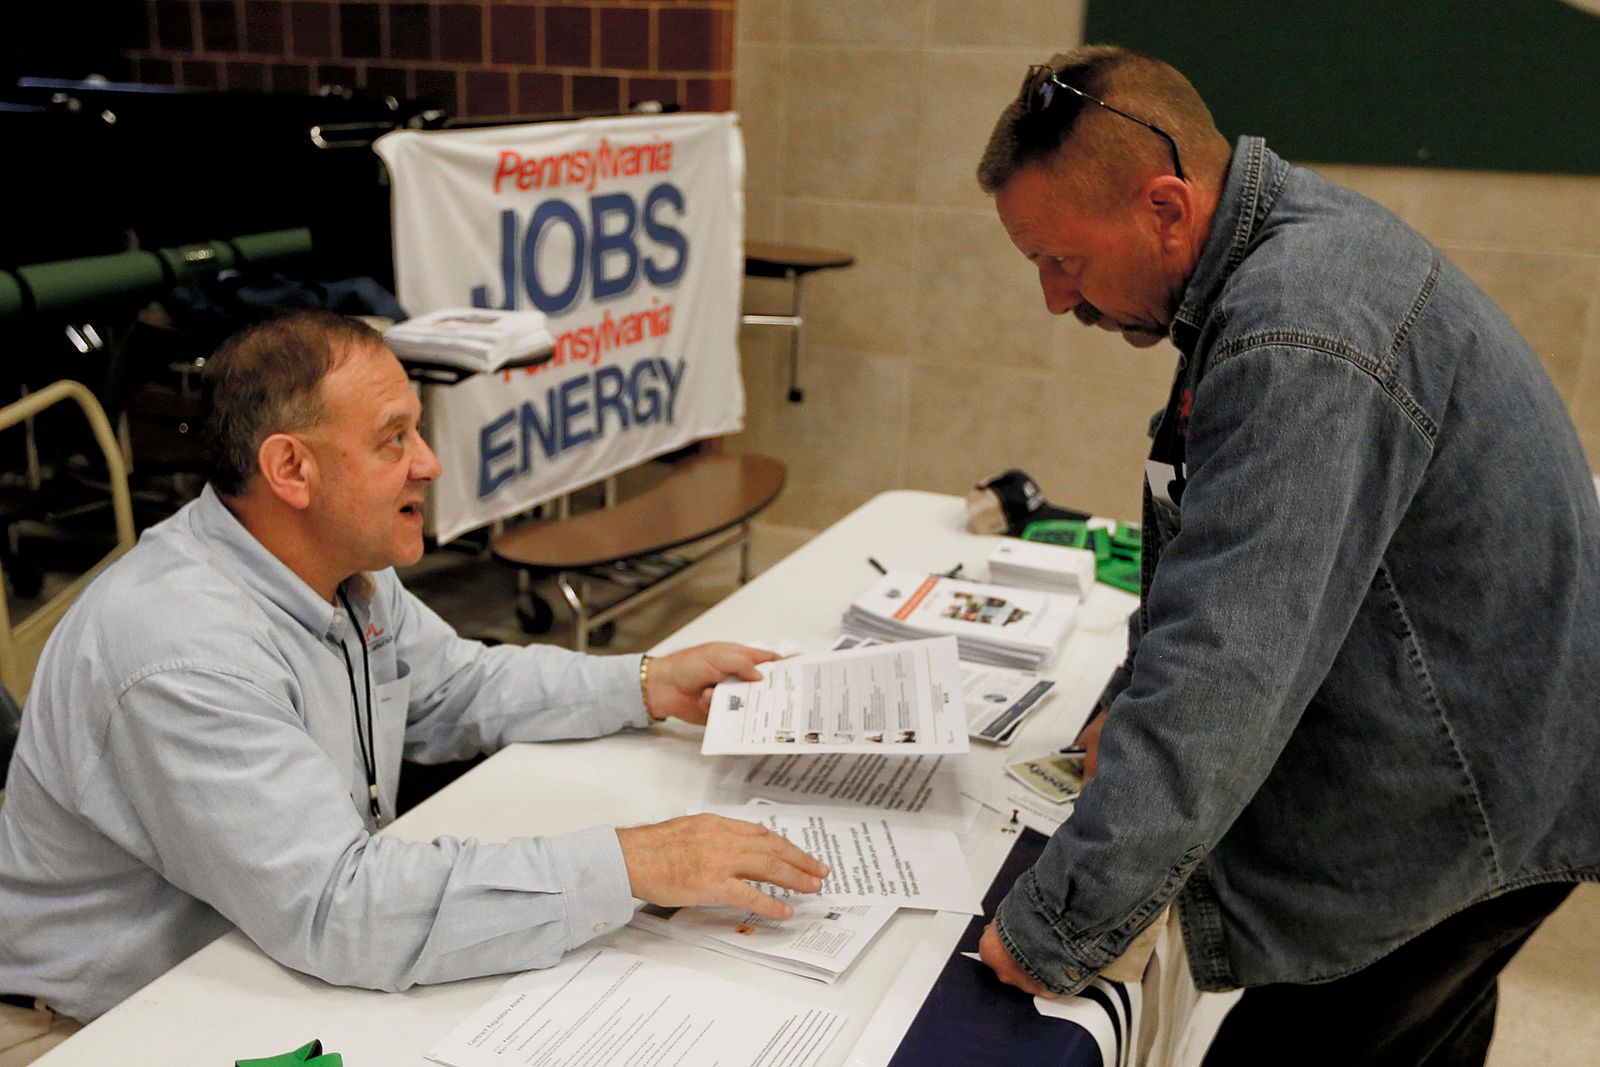 FILE - In this Thursday, Nov. 2, 2017, photo, a recruiter in the shale gas industry, left, speaks with an attendee of a job fair in Cheswick, Pa. (AP Photo/Keith Srakocic, File)